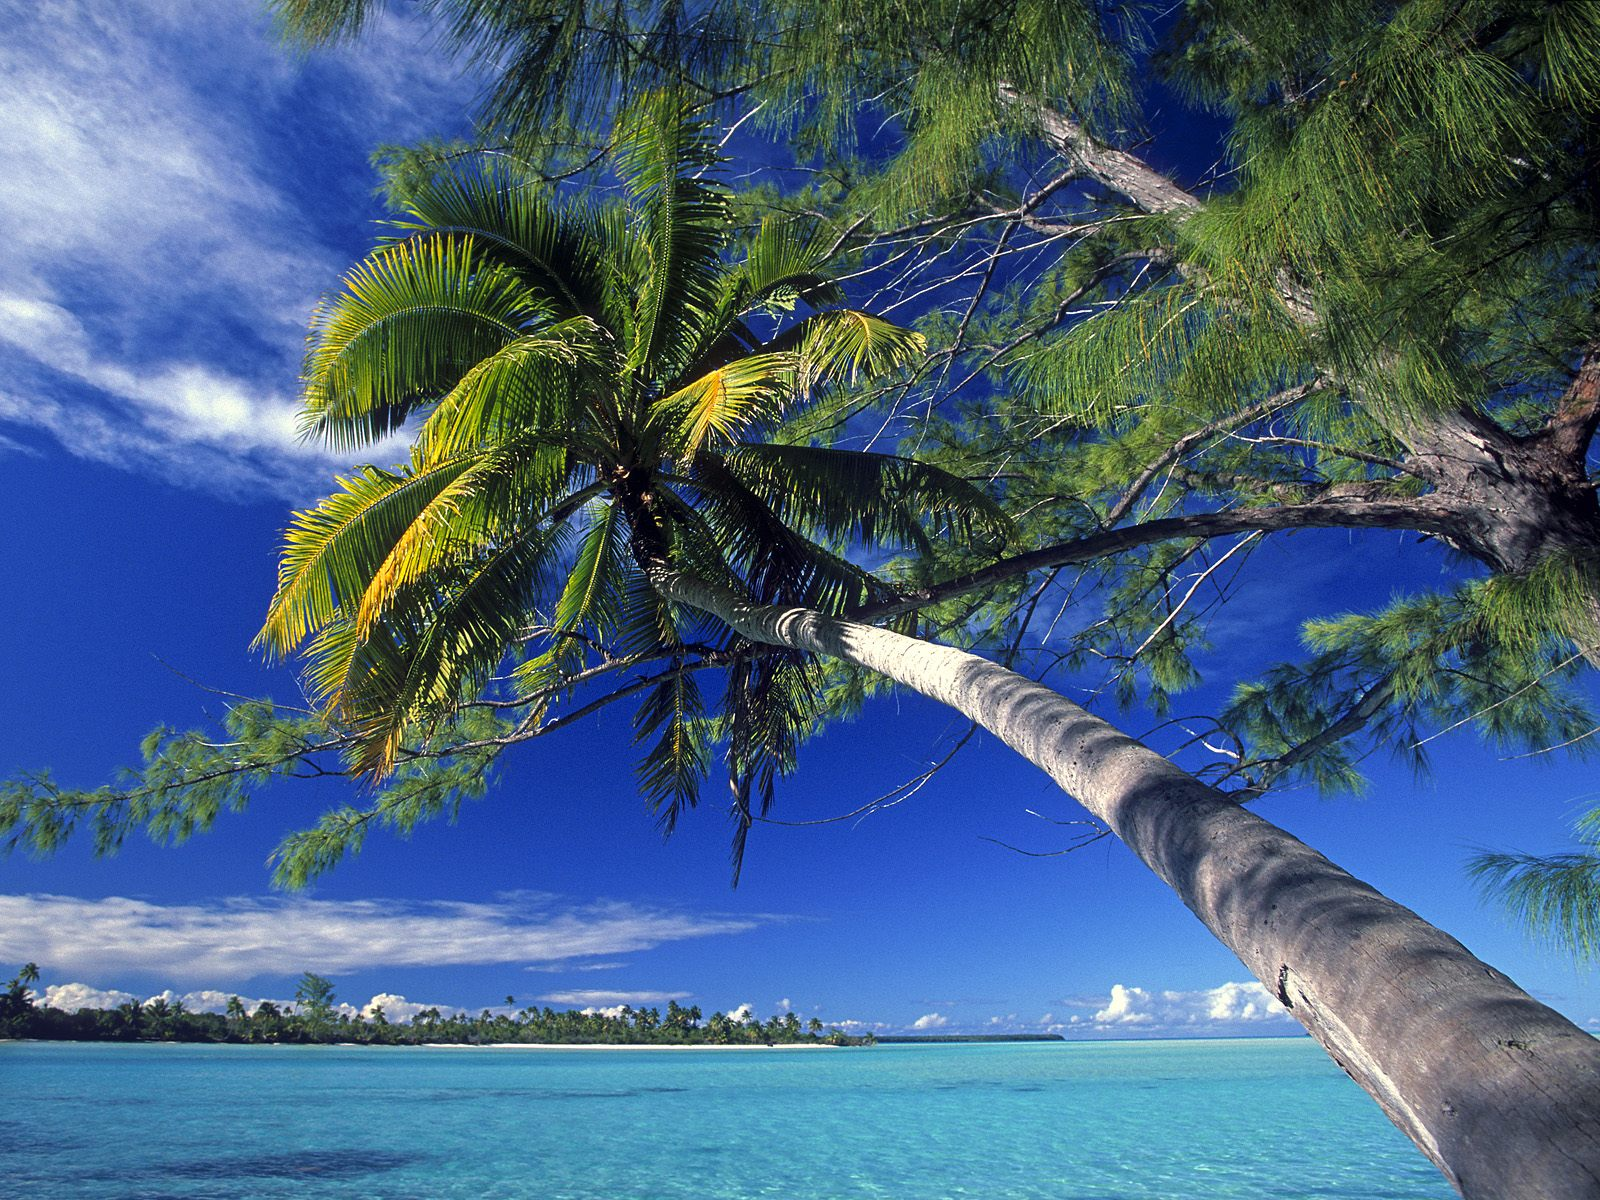 1600x1200 Bended Palm Tree desktop wallpapers and stock photos